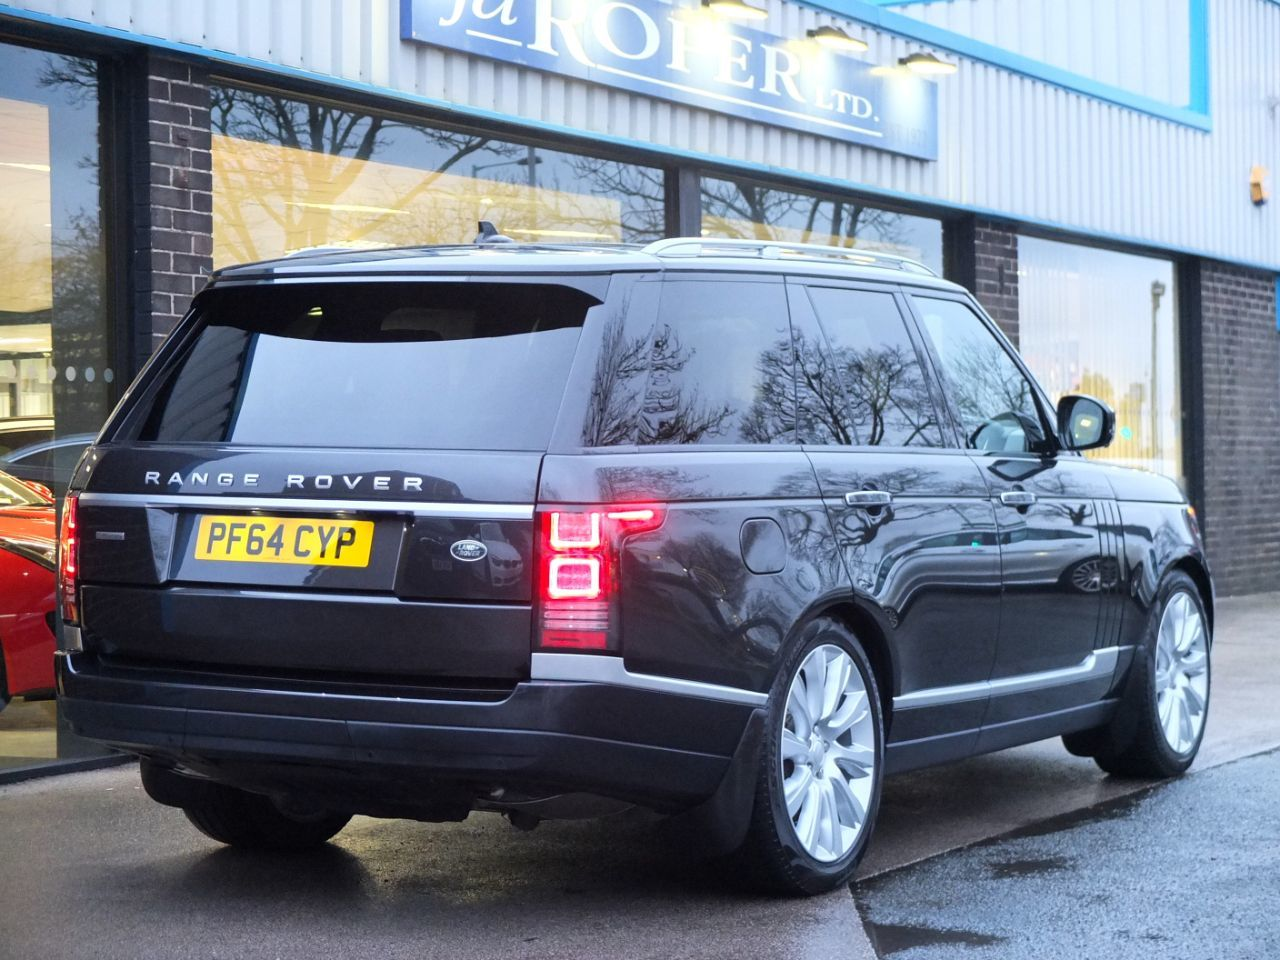 Land Rover Range Rover 4.4 SDV8 Autobiography Estate Diesel Causeway Grey Metallic